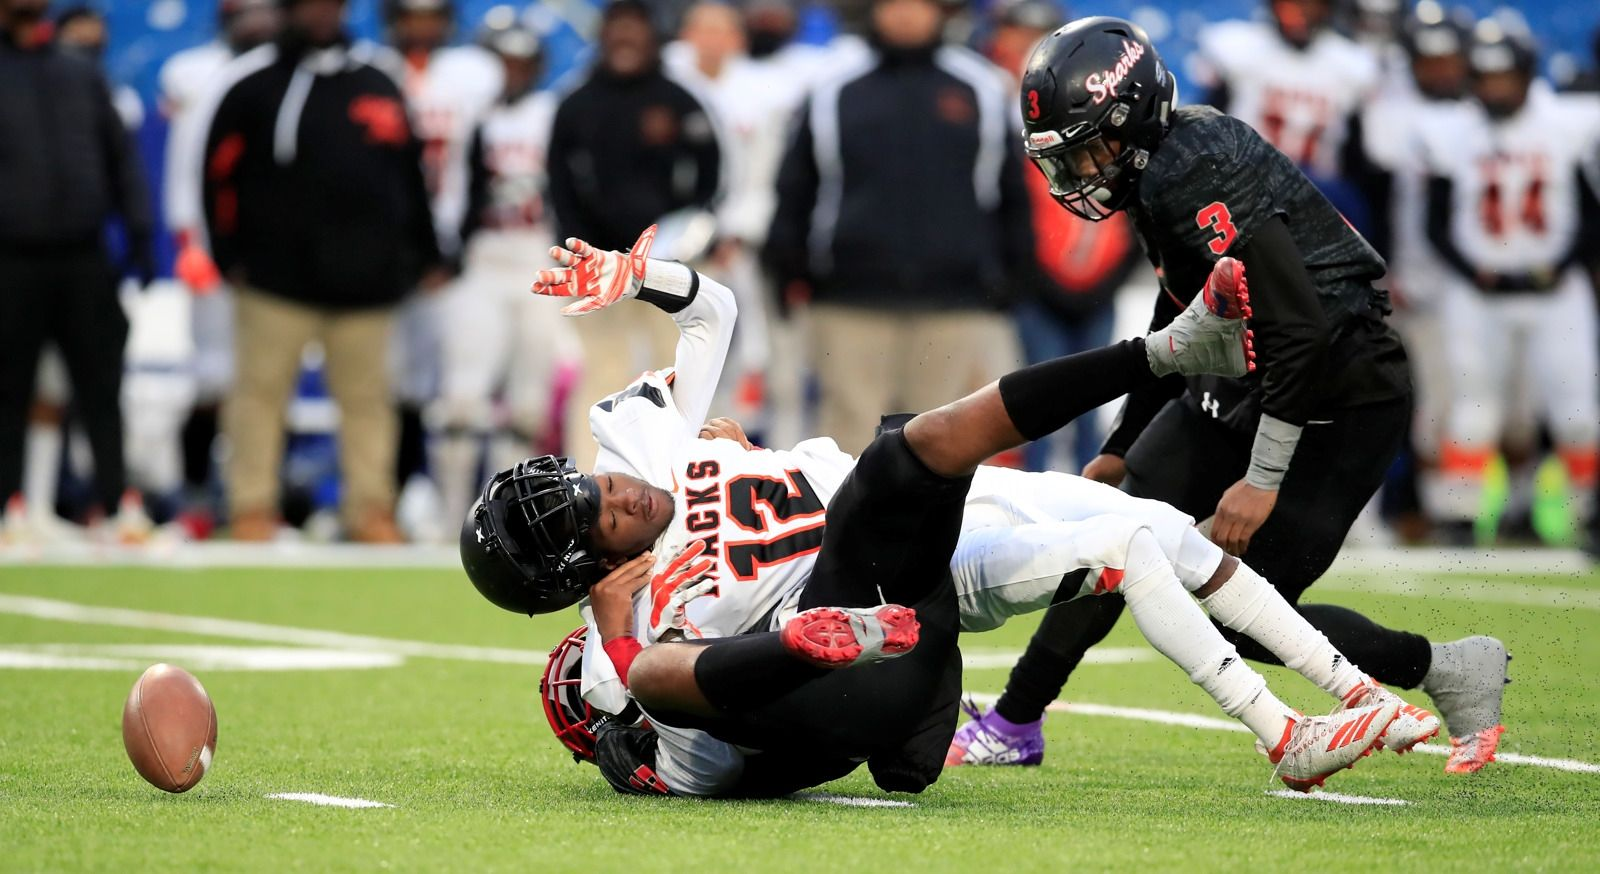 South Park defender Jaysean Armstead sacks McKinley quarterback Javon Whitfield and South Park's Keith Jackson recovers the fumble for a touchdown during the Section VI Football Class A Final at New Era Field on Saturday, Nov. 9, 2019.